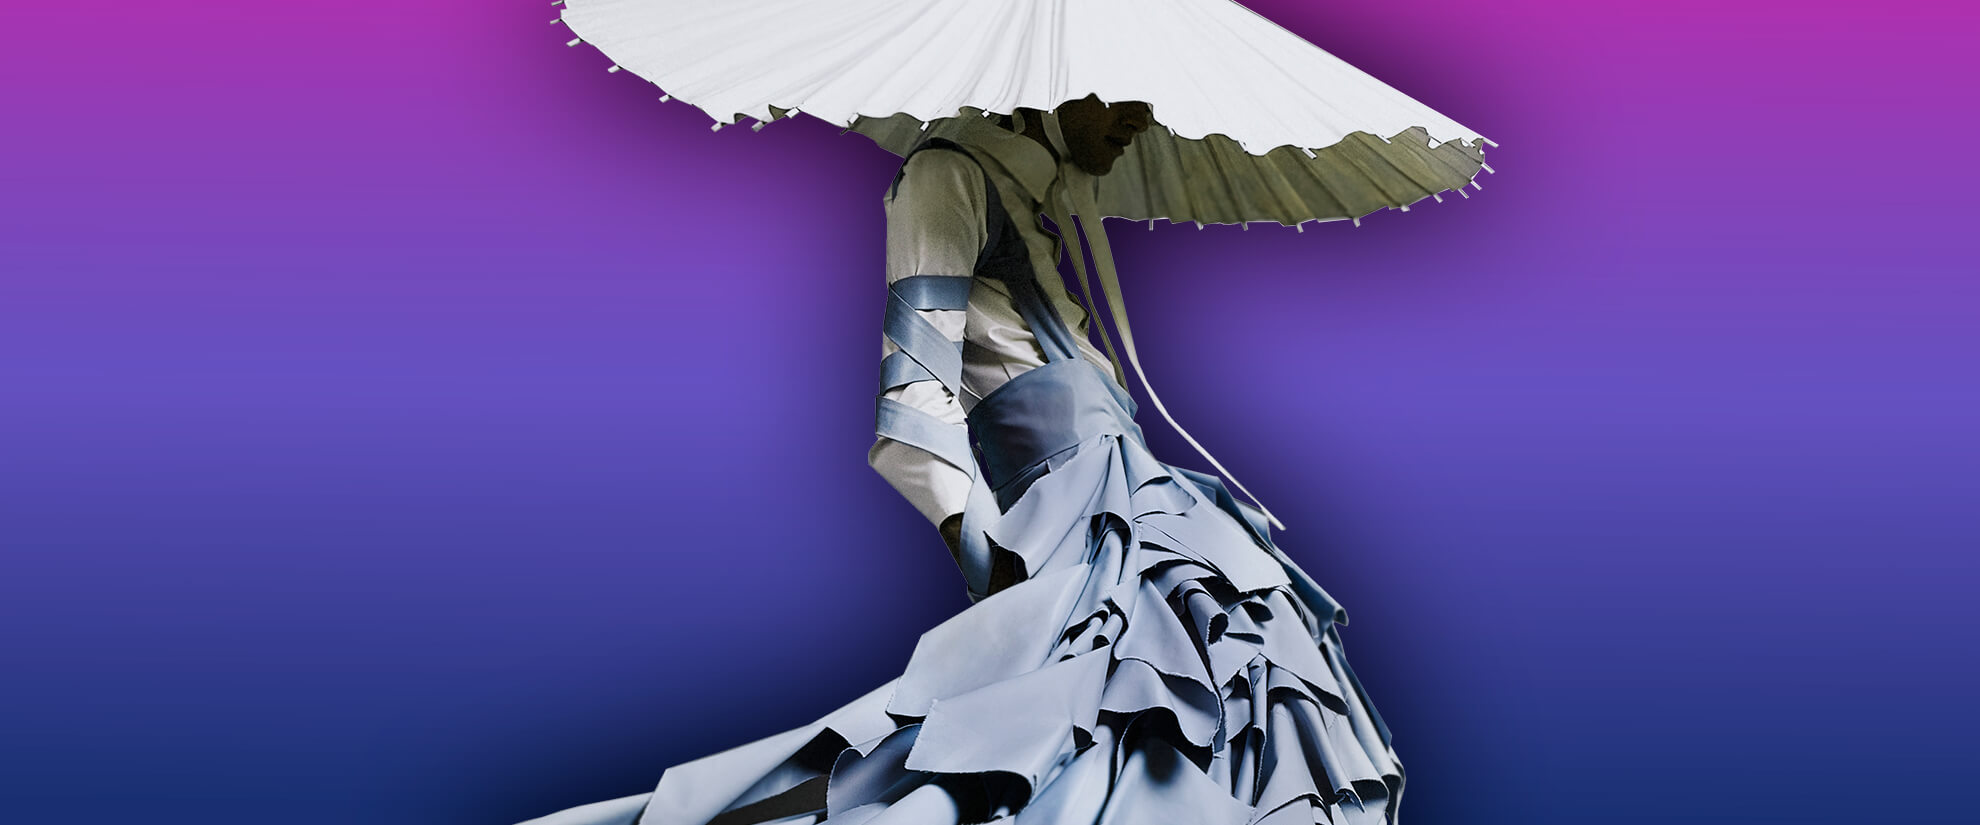 Graphic featuring dress made by Alessandro Trincone da237224939